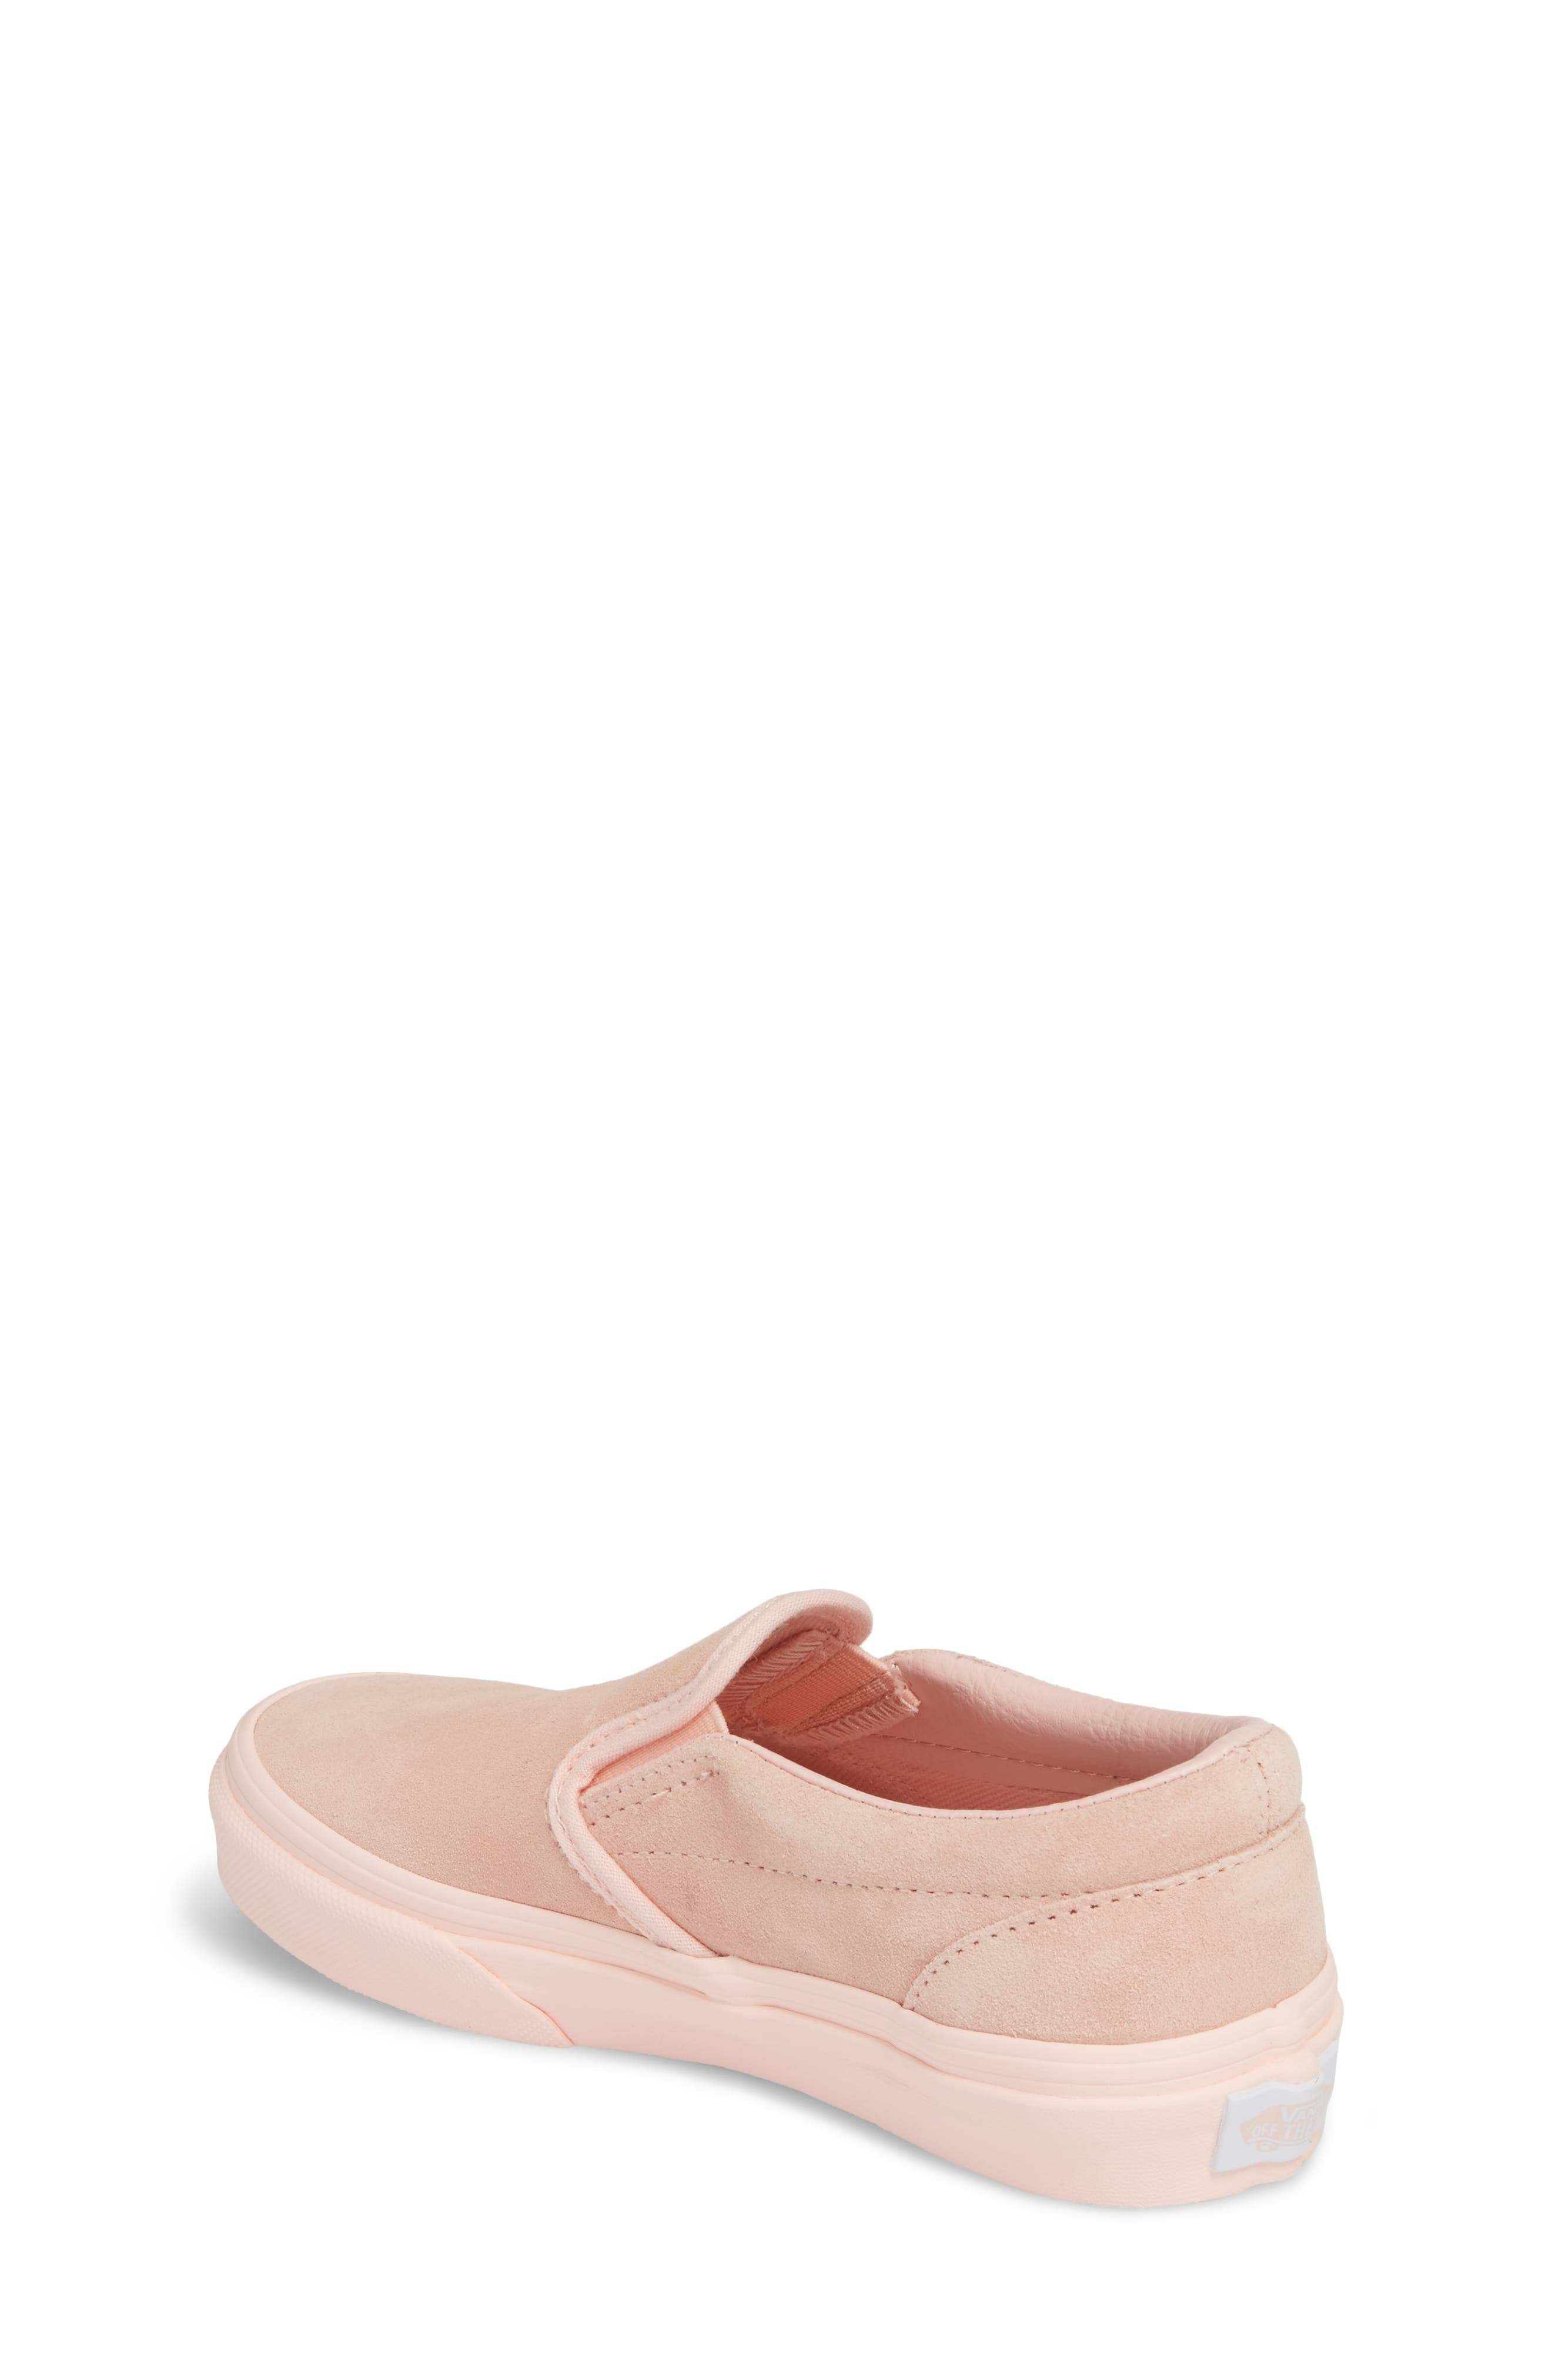 Classic Slip-On Sneaker,                             Alternate thumbnail 2, color,                             Suede Mono/ English Rose